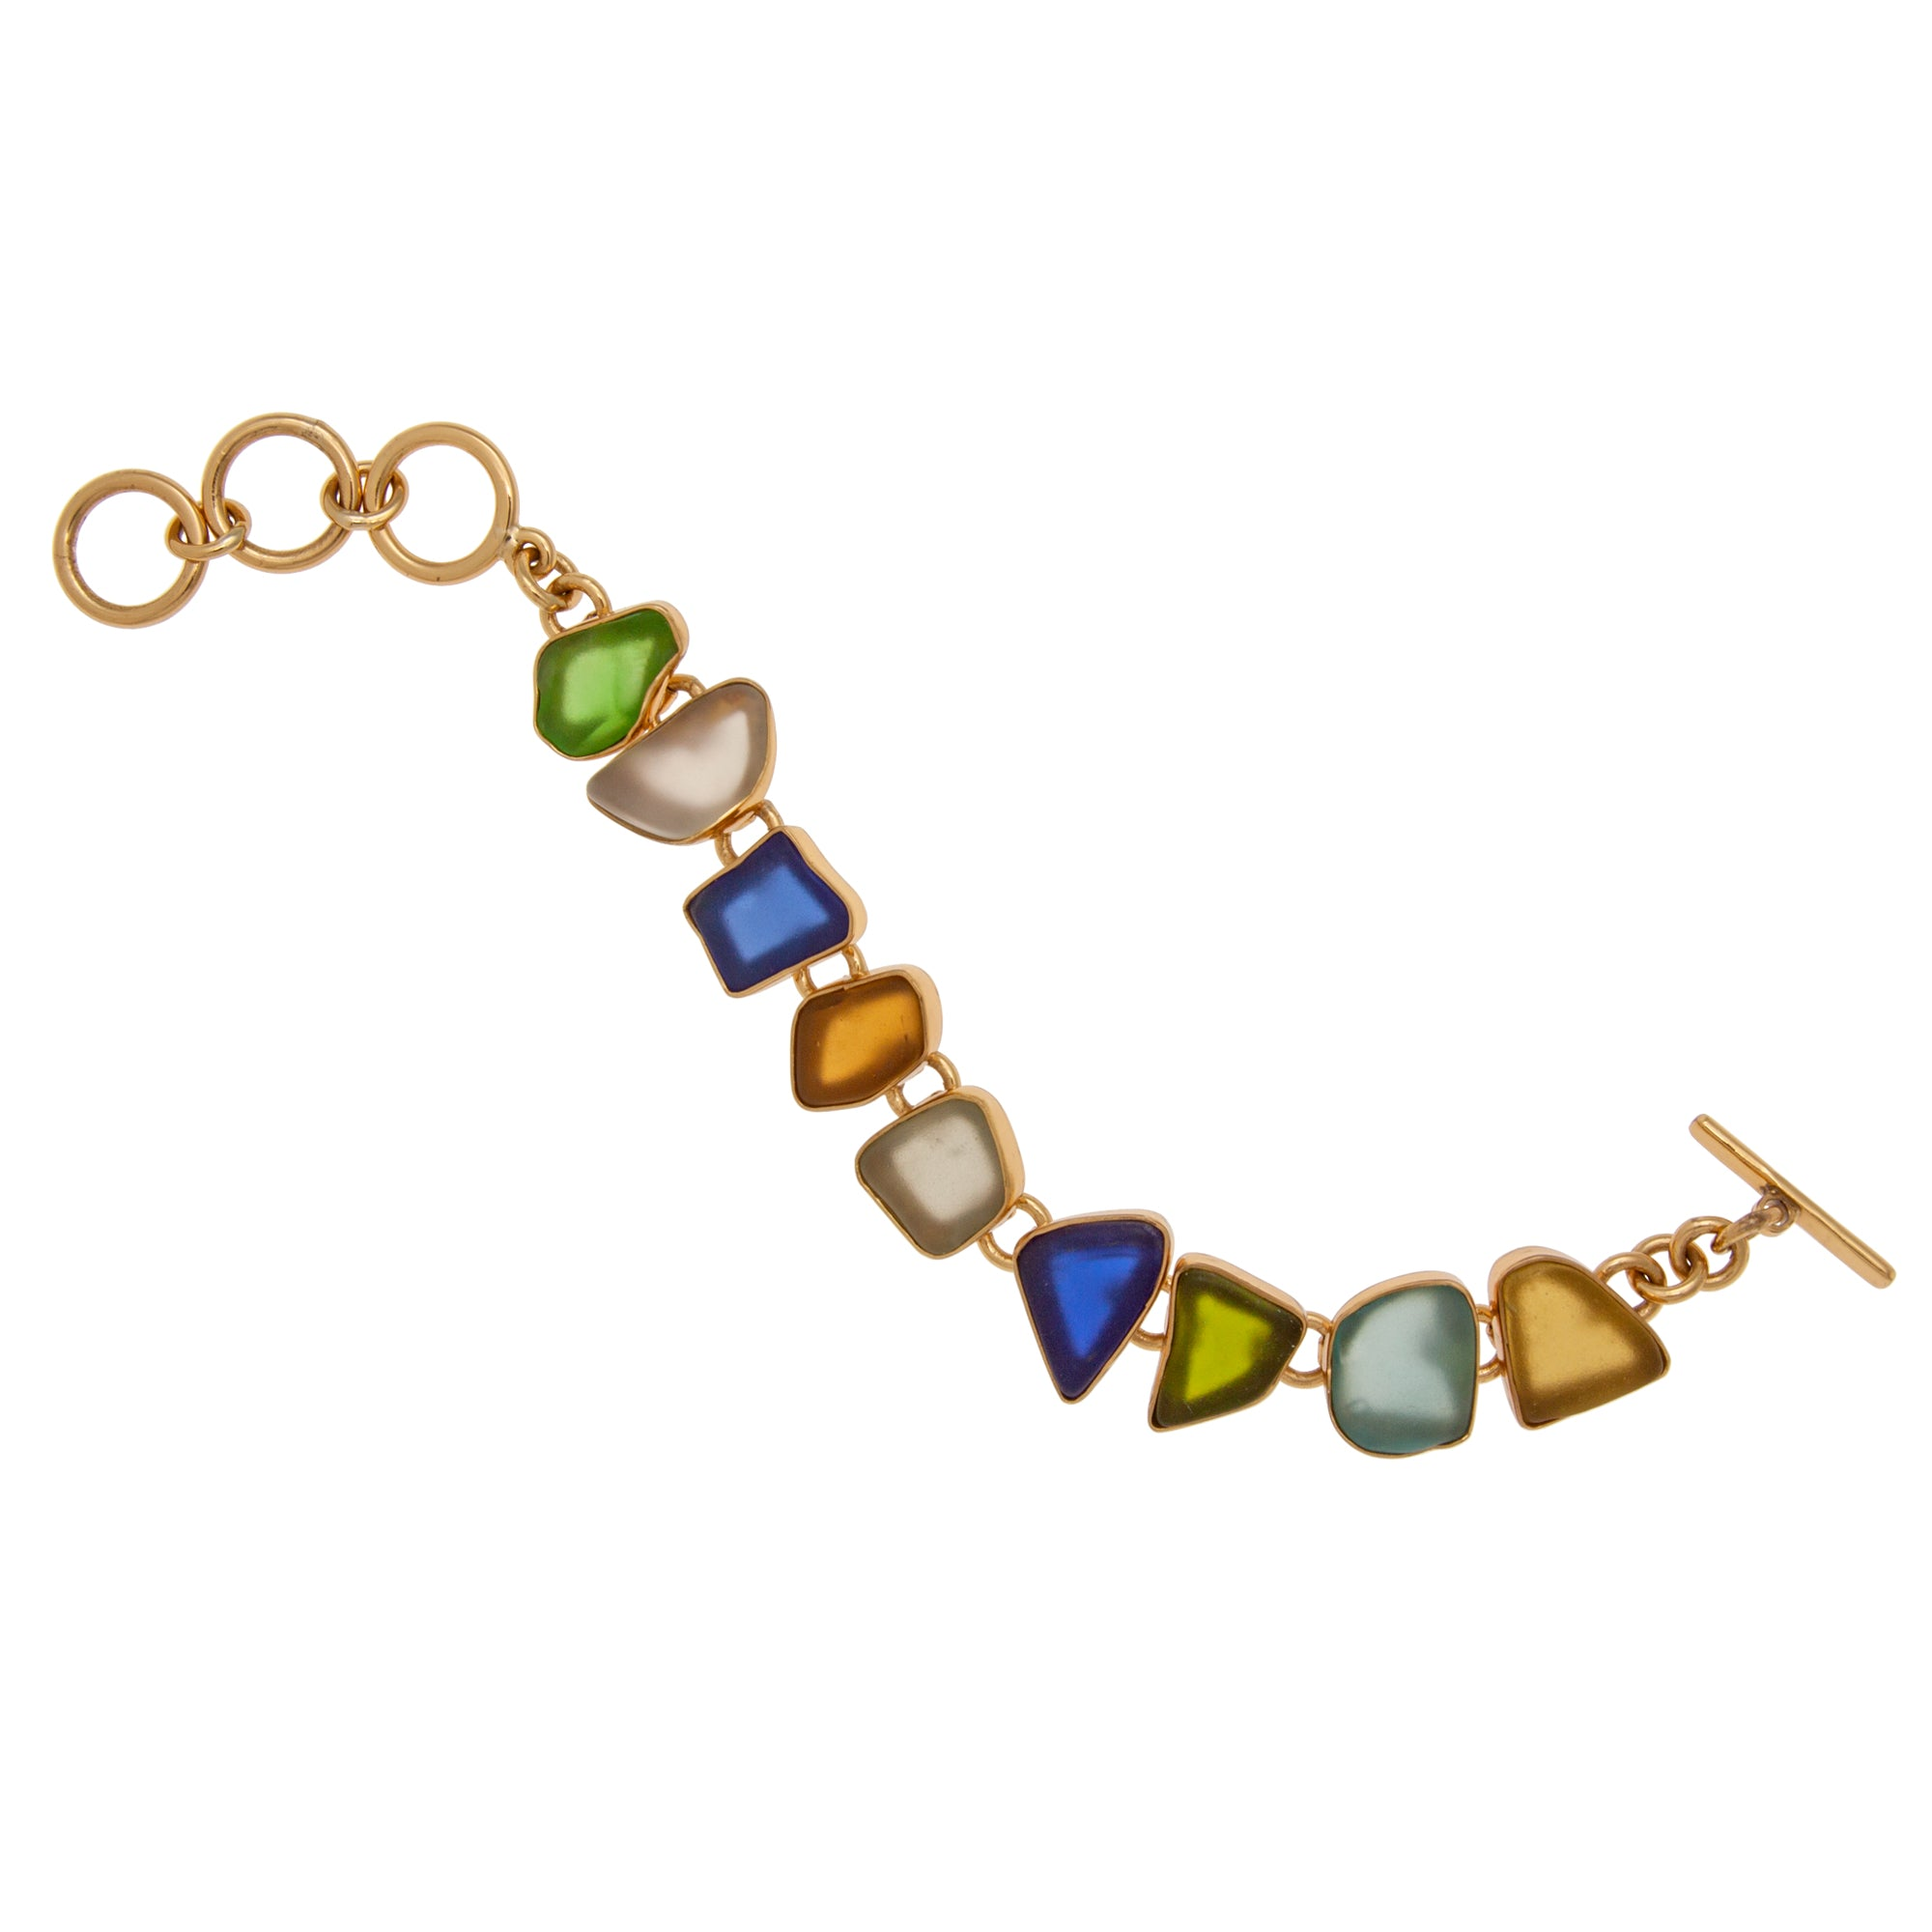 Alchemia Multi Color Recycled Glass Bracelet | Charles Albert Jewelry